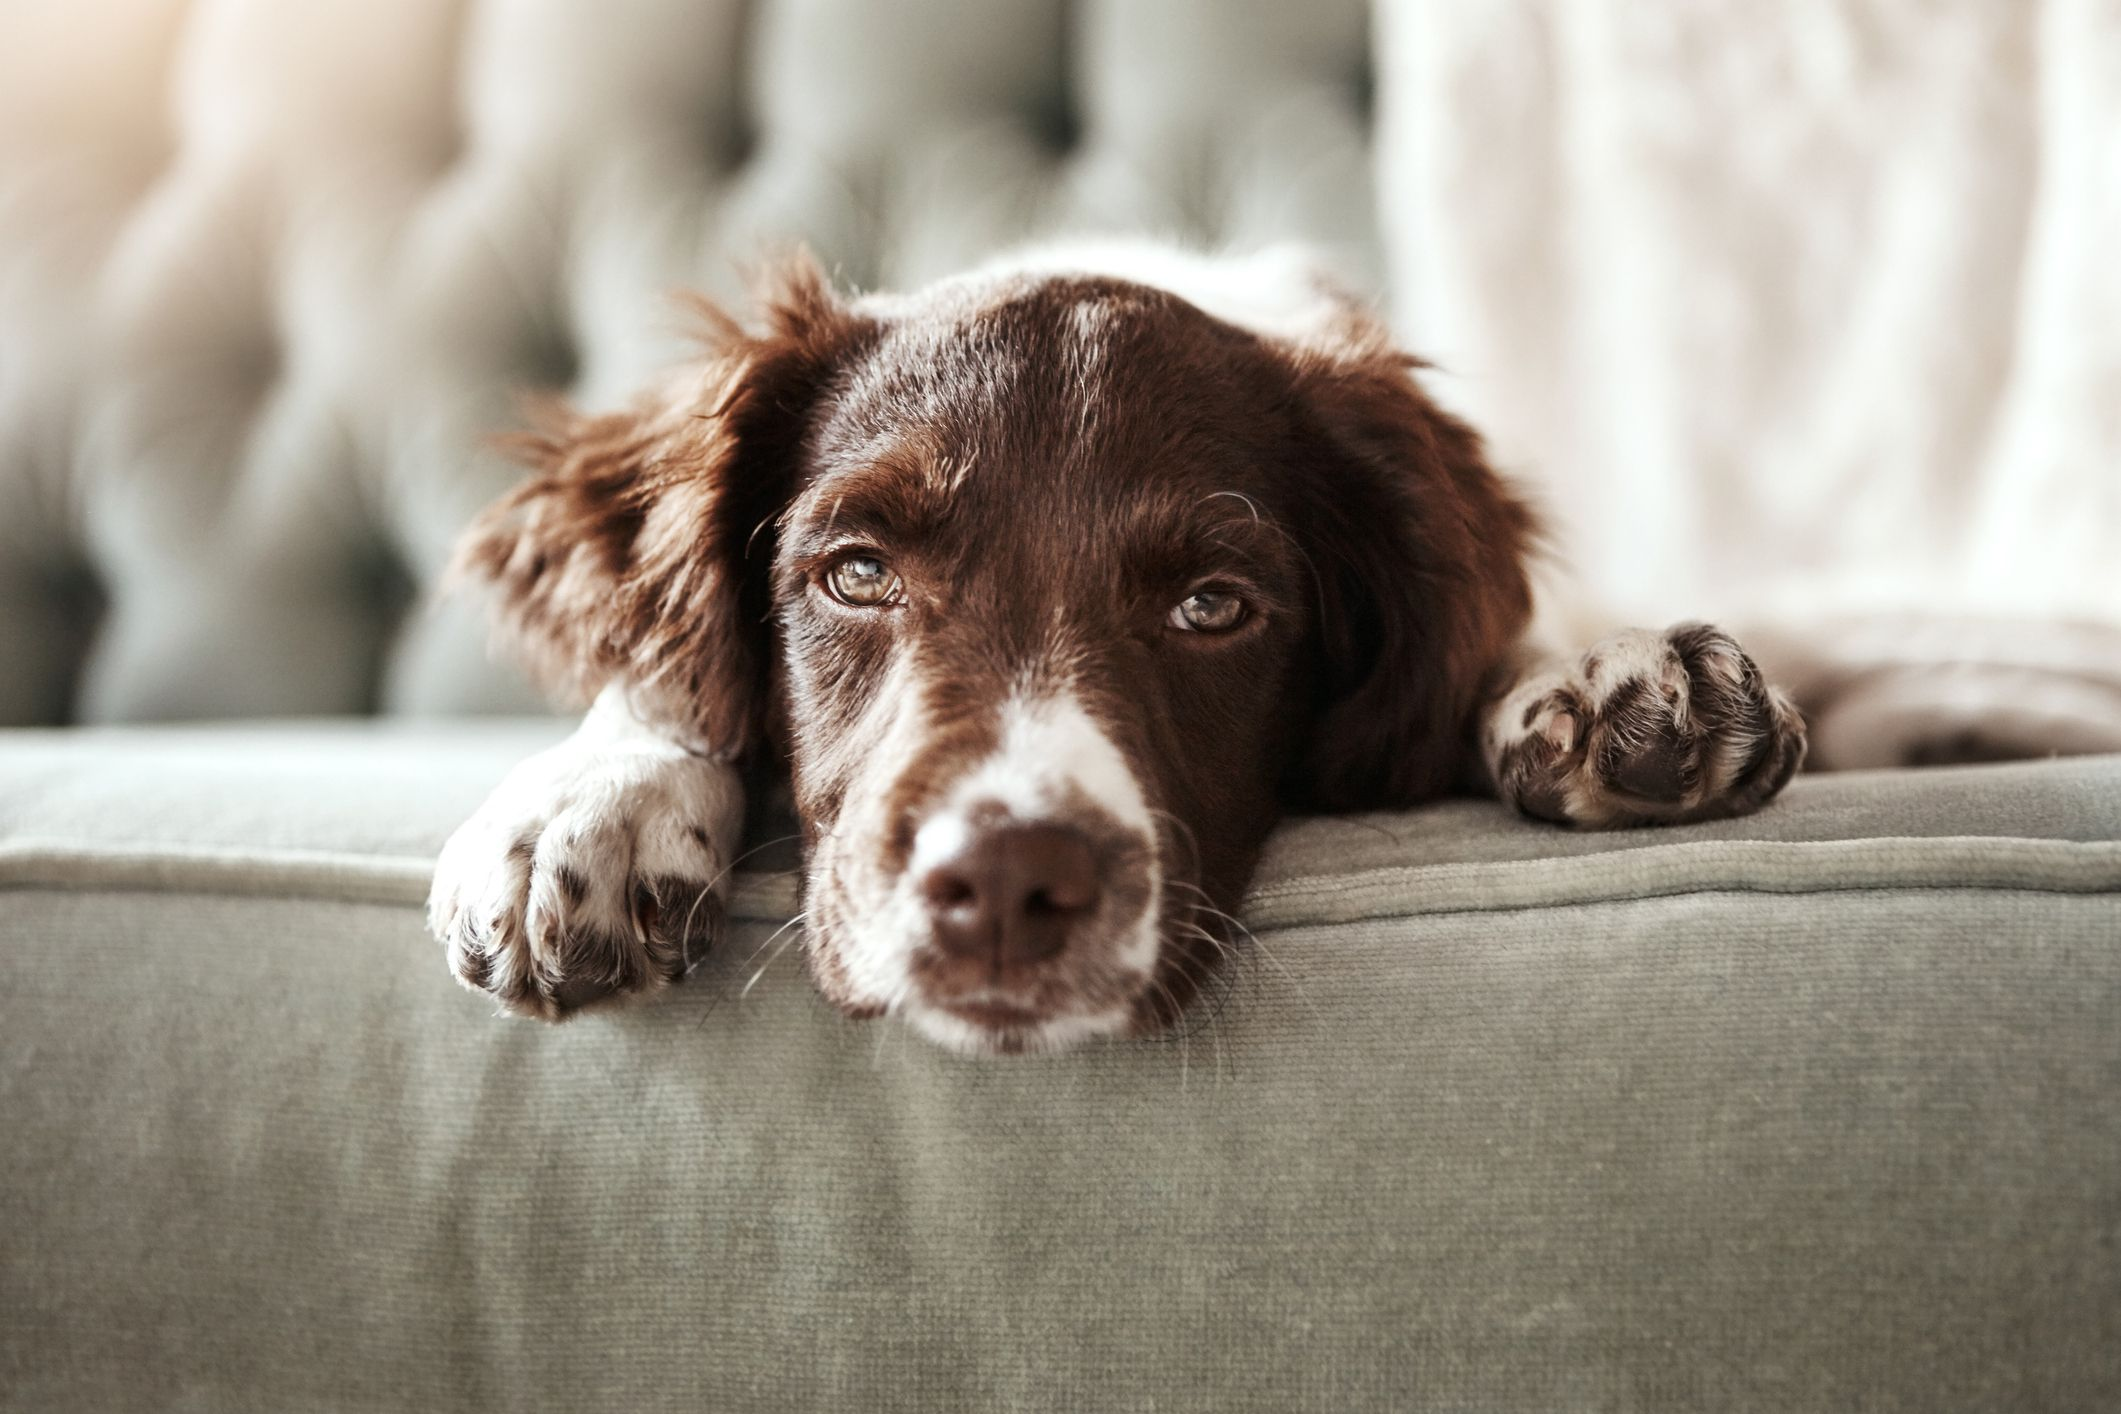 """Owners who use """"punishment-based"""" training on dogs may be making them depressed, study finds"""